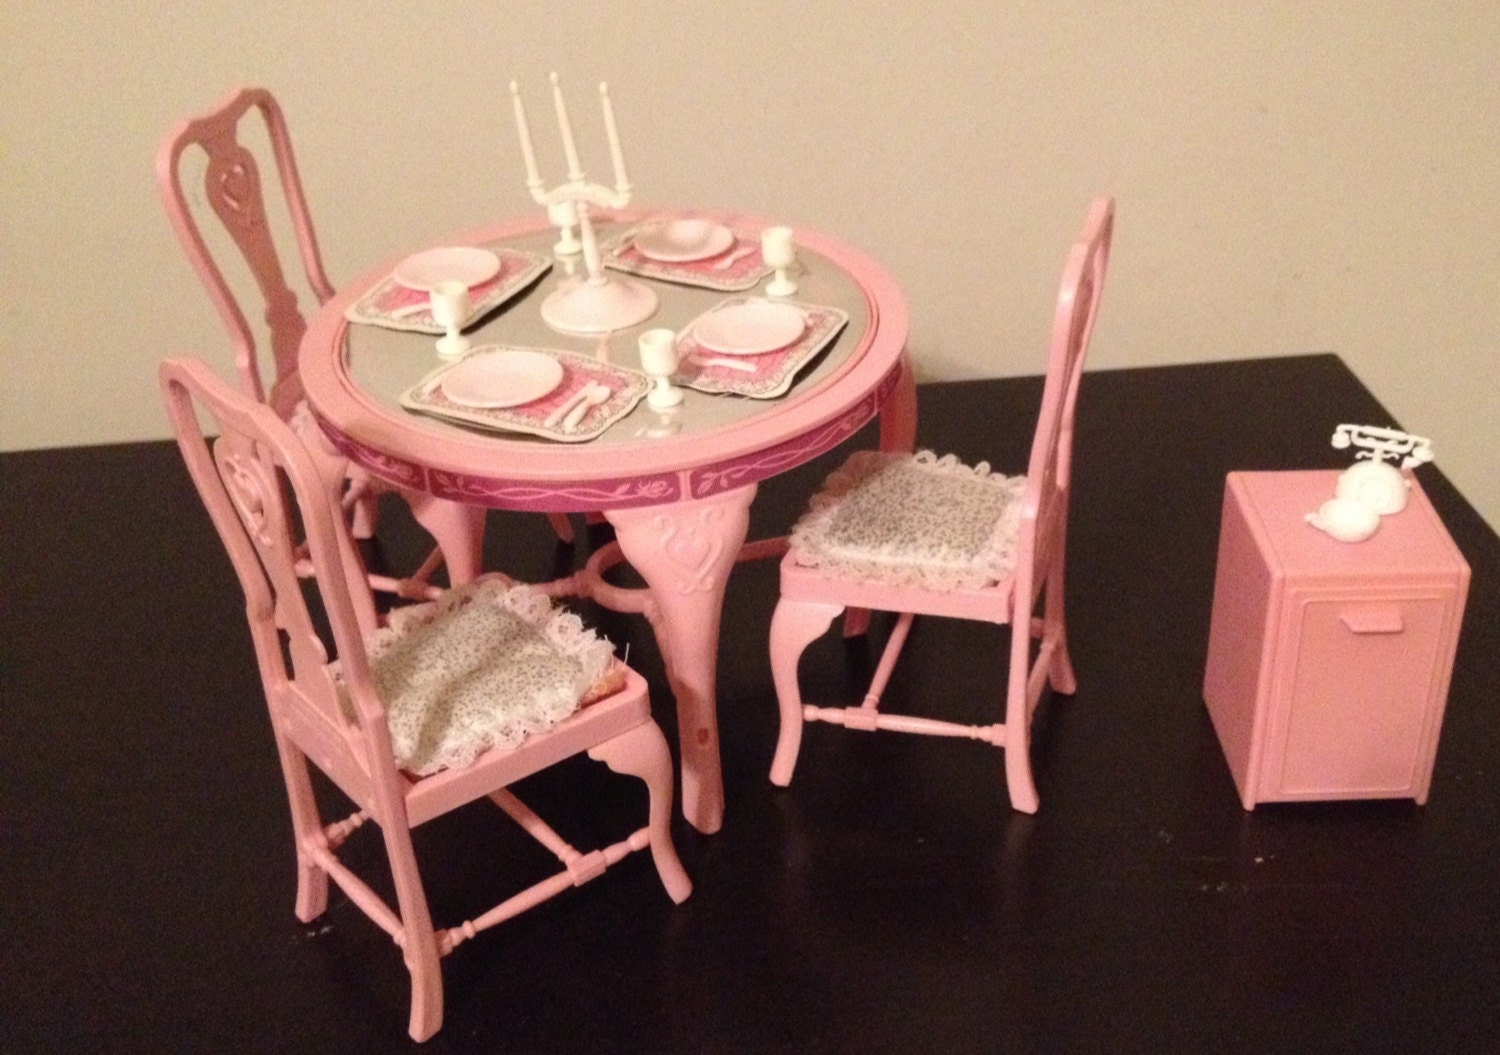 Barbie Furniture dining room table and chairs : ilfullxfull812288072m4y0 from www.etsy.com size 1500 x 1055 jpeg 277kB